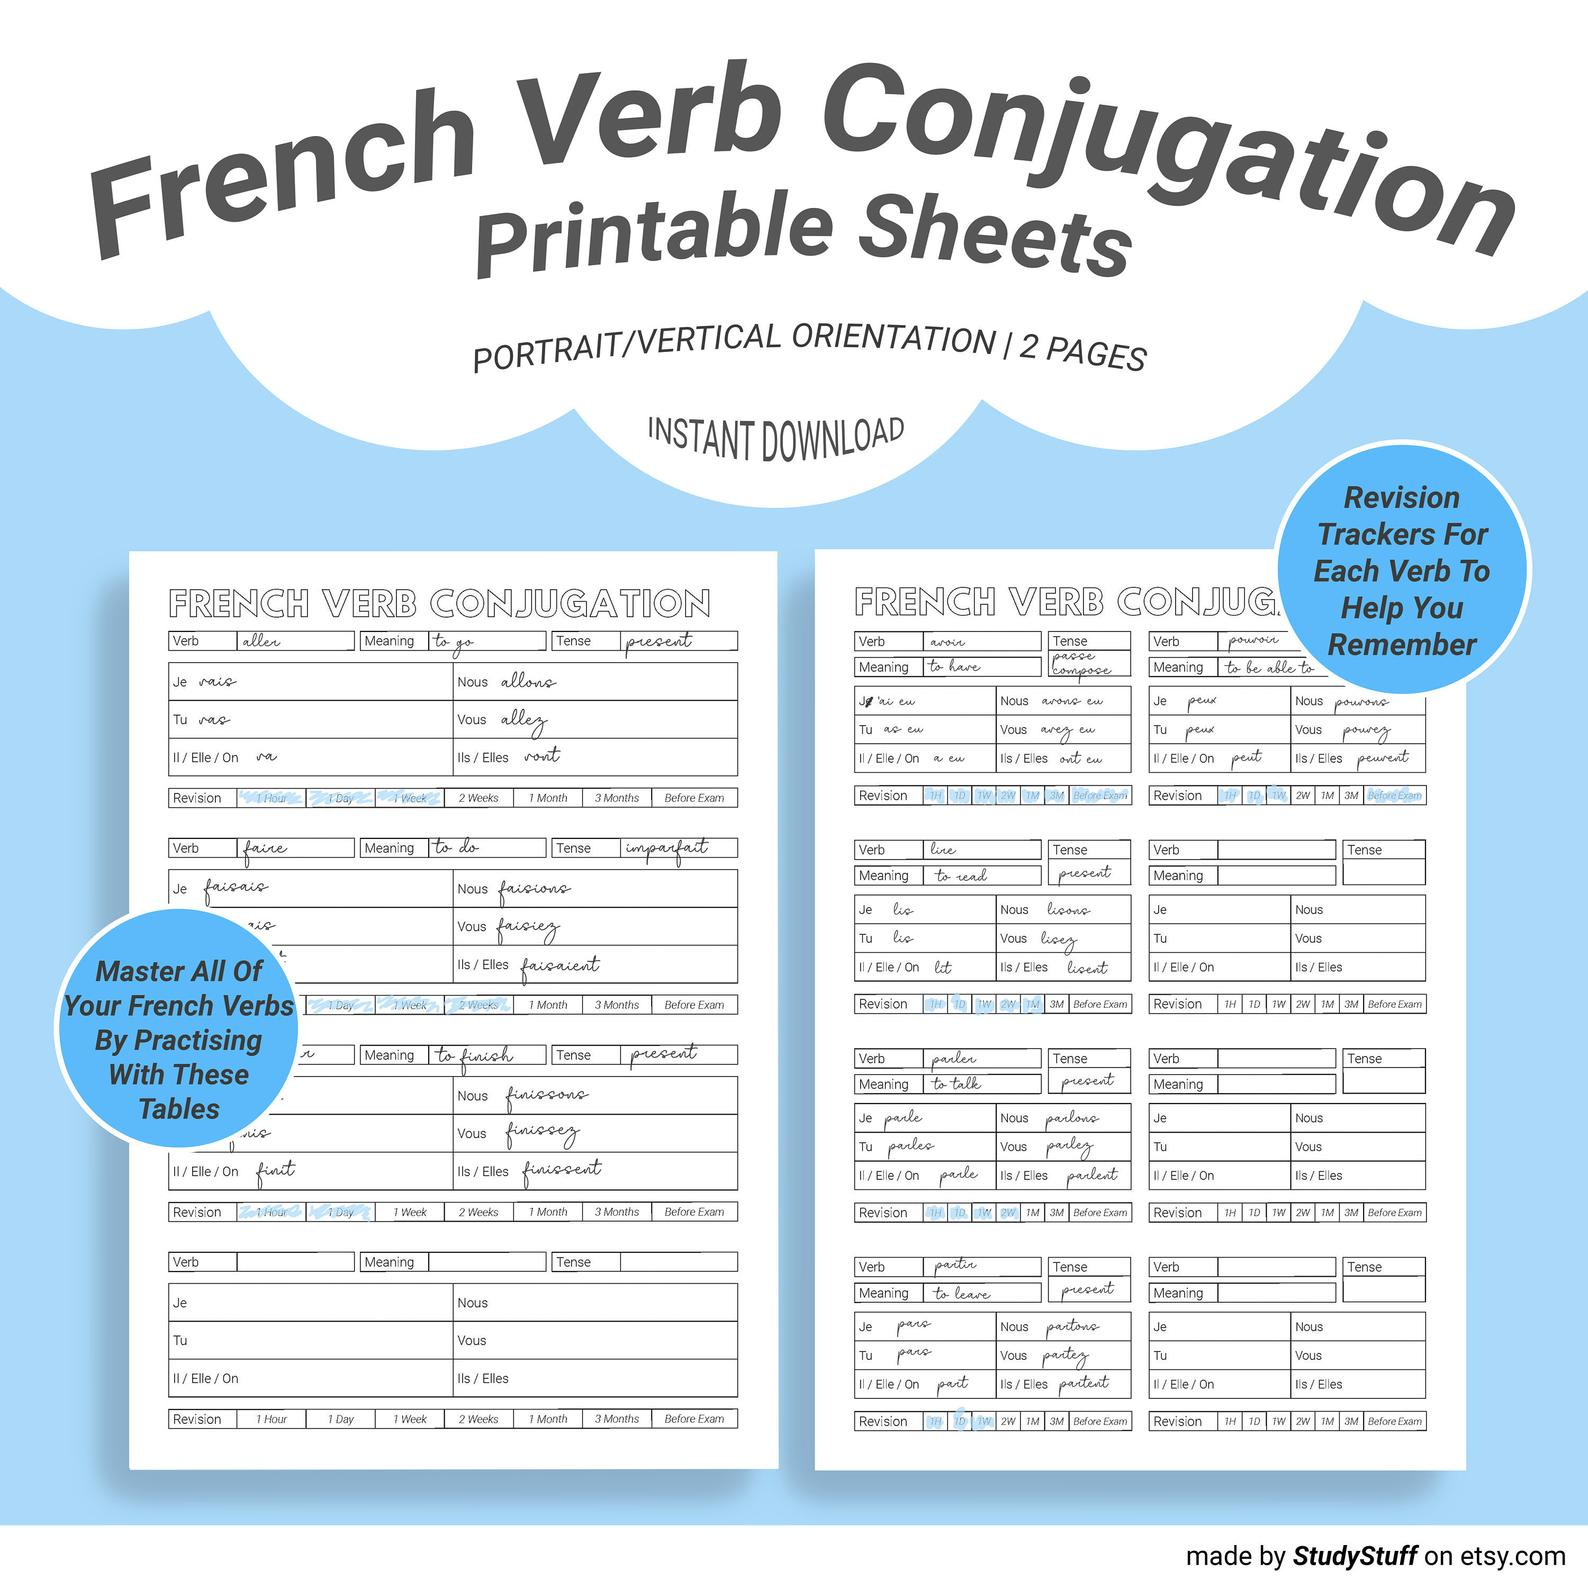 Use This Conjugation Worksheet To Master Your French Verbs